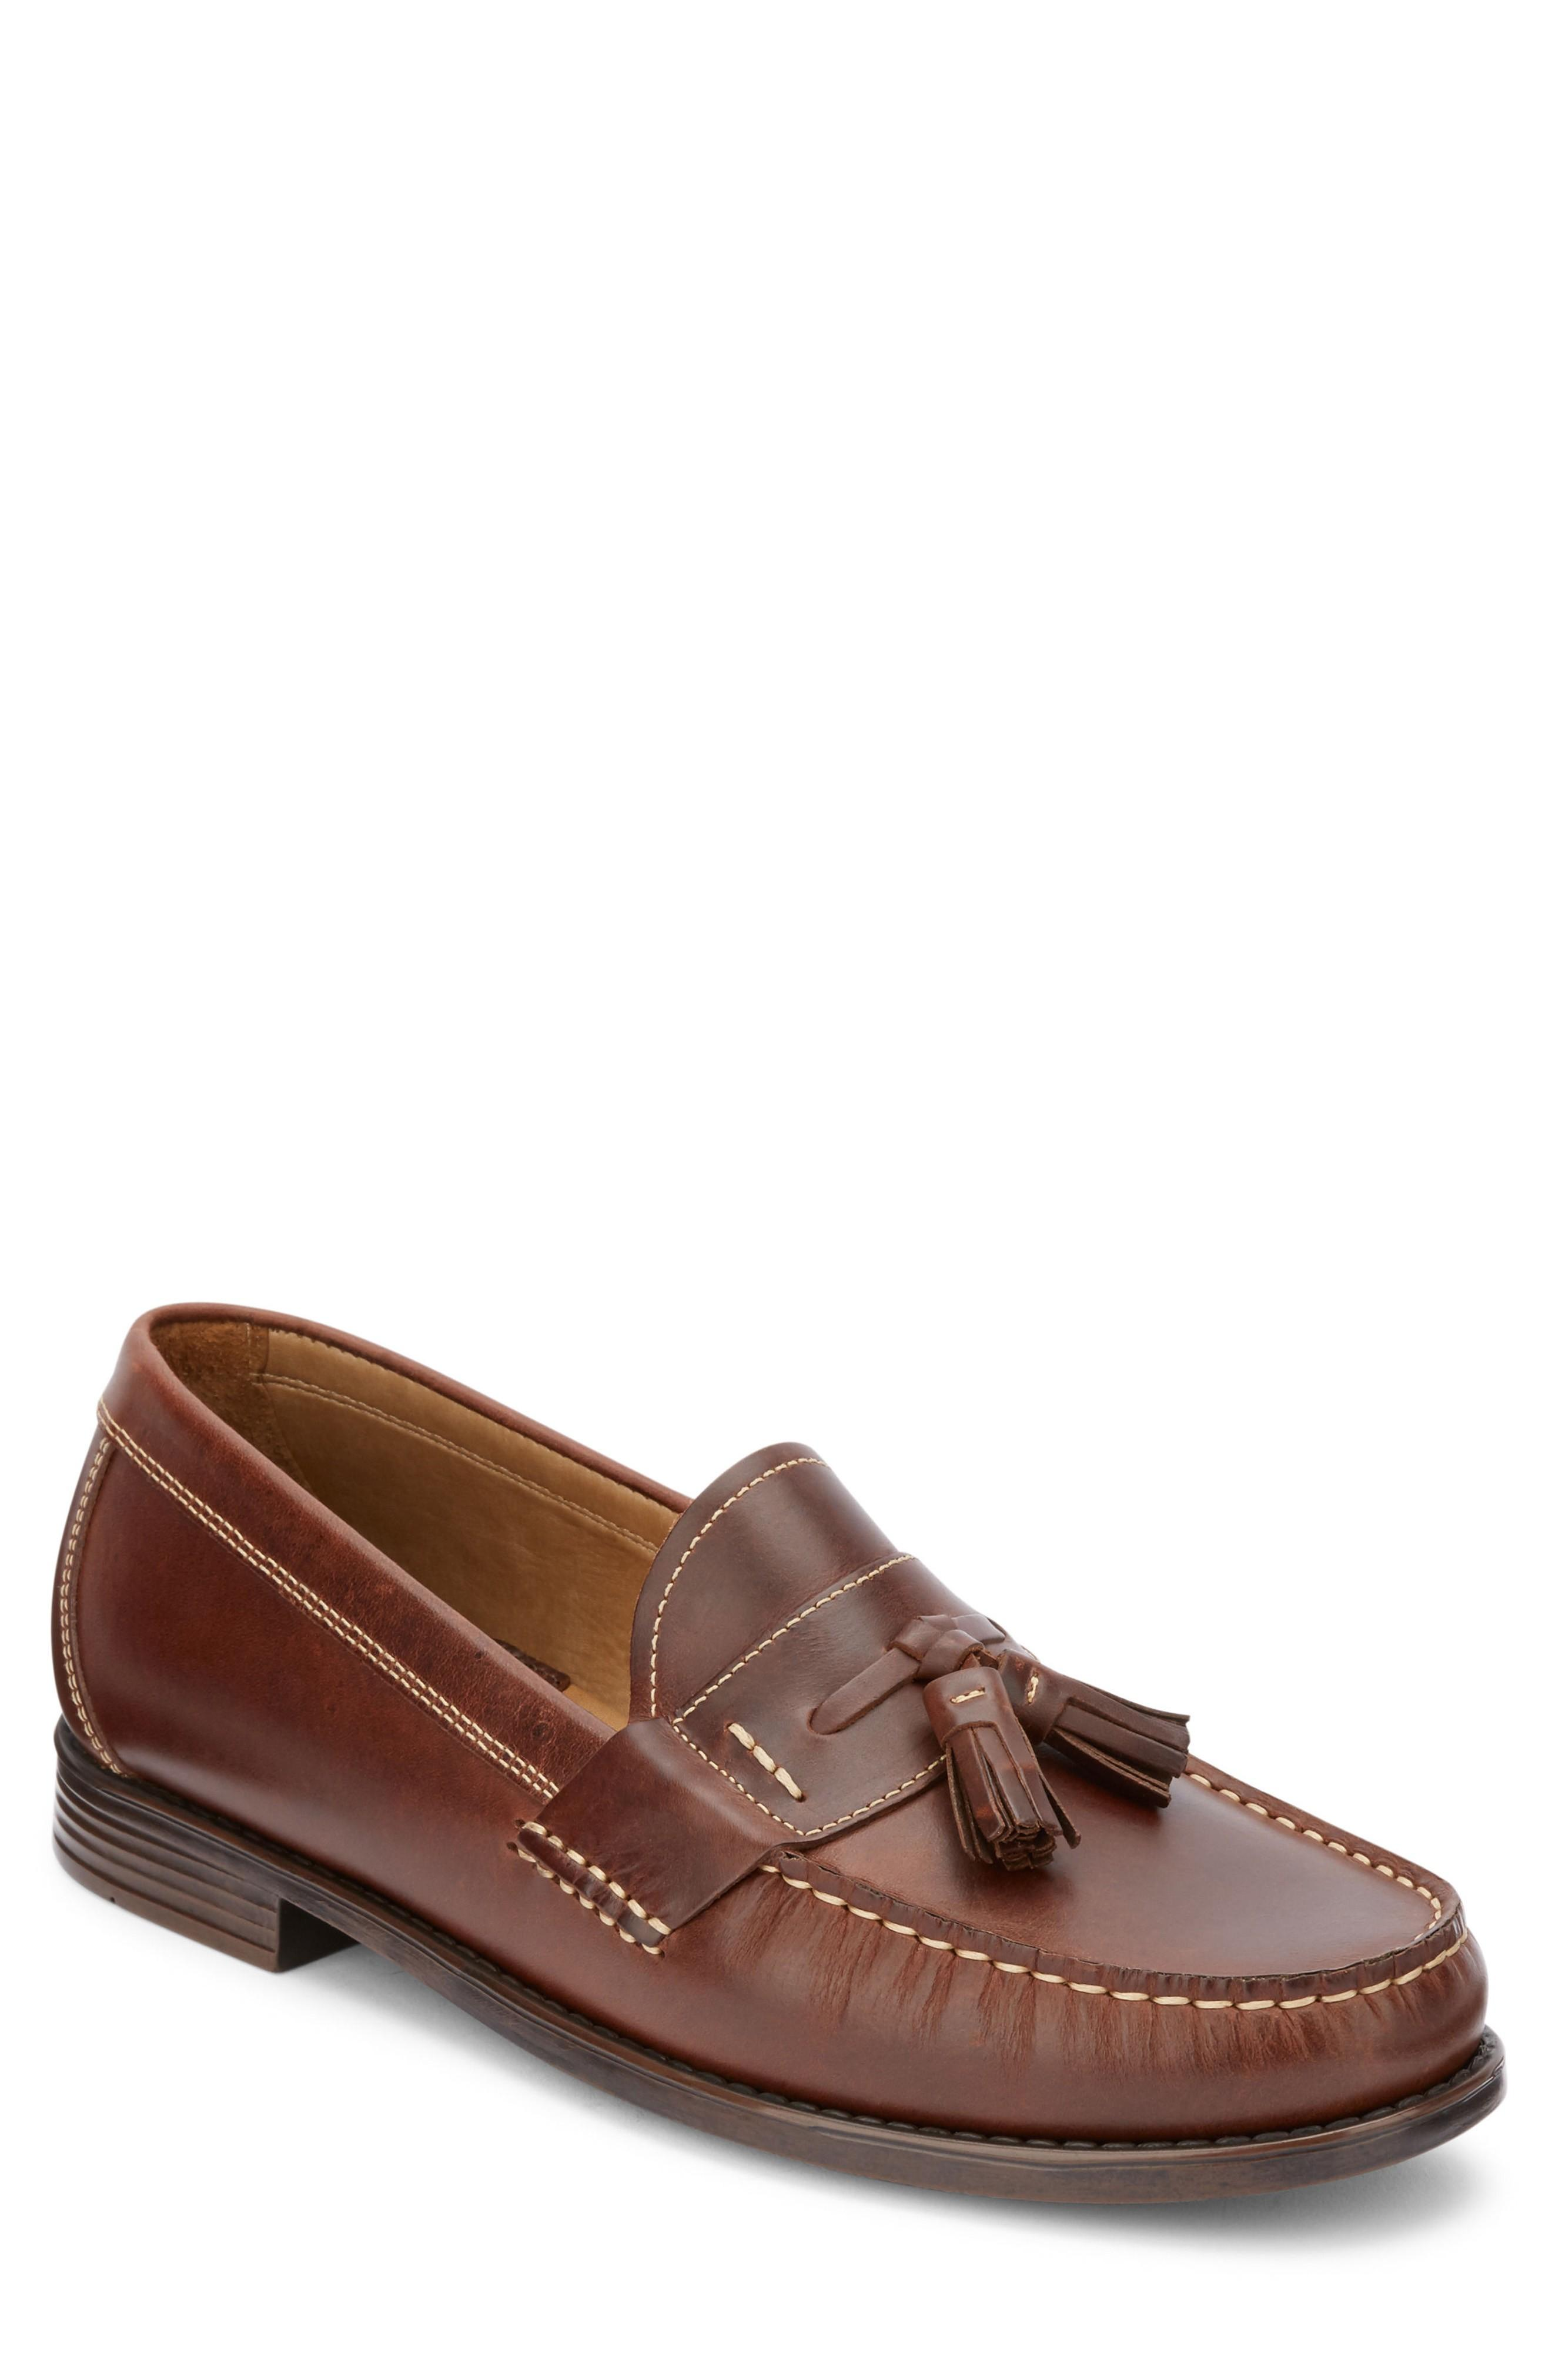 6732d9d2f2b A casual moc-toe loafer in burnished leather is topped by classic tassels  and fitted with cushioned arch support. Style Name G.h. Bass   Co.